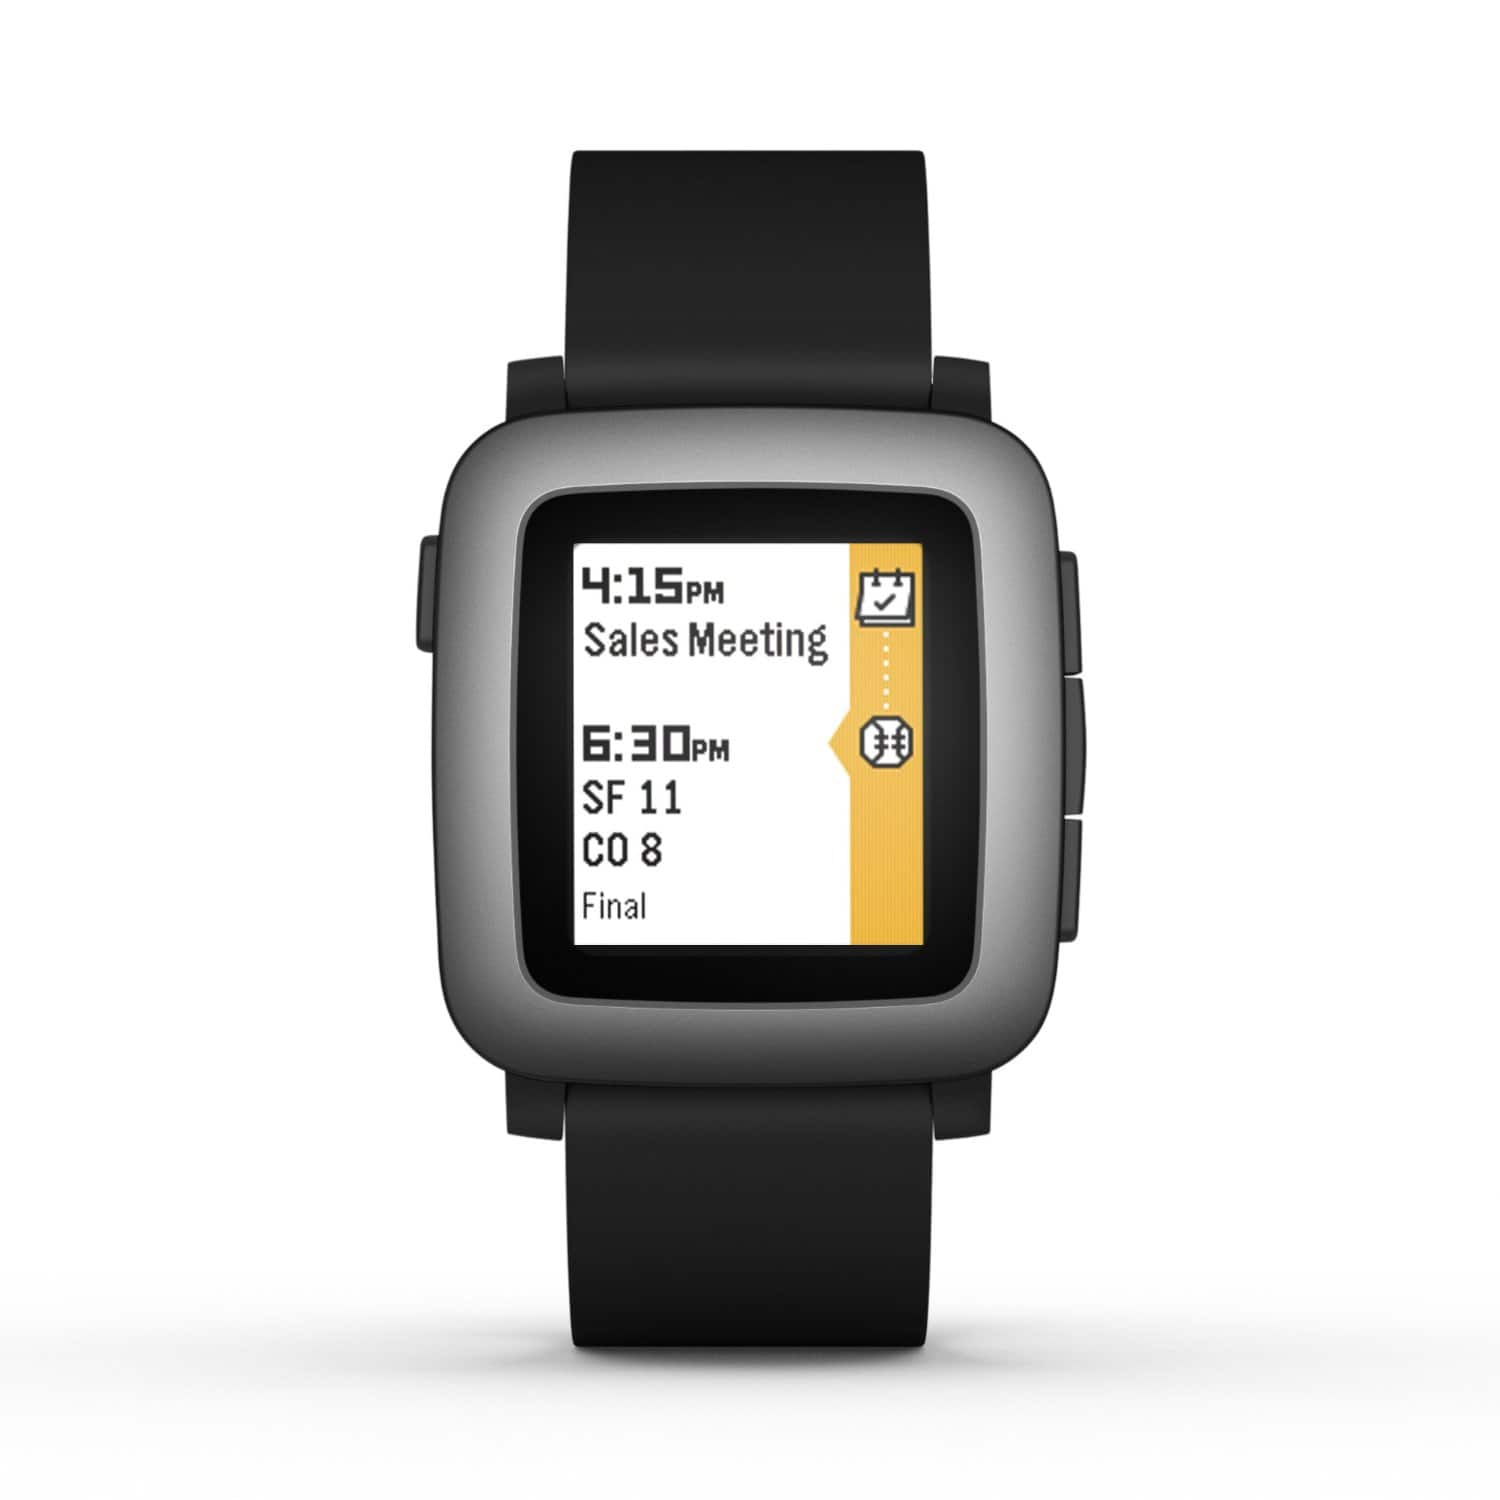 Pebble Time 38mm Smartwatch for Android/iOS Devices (black)  $100